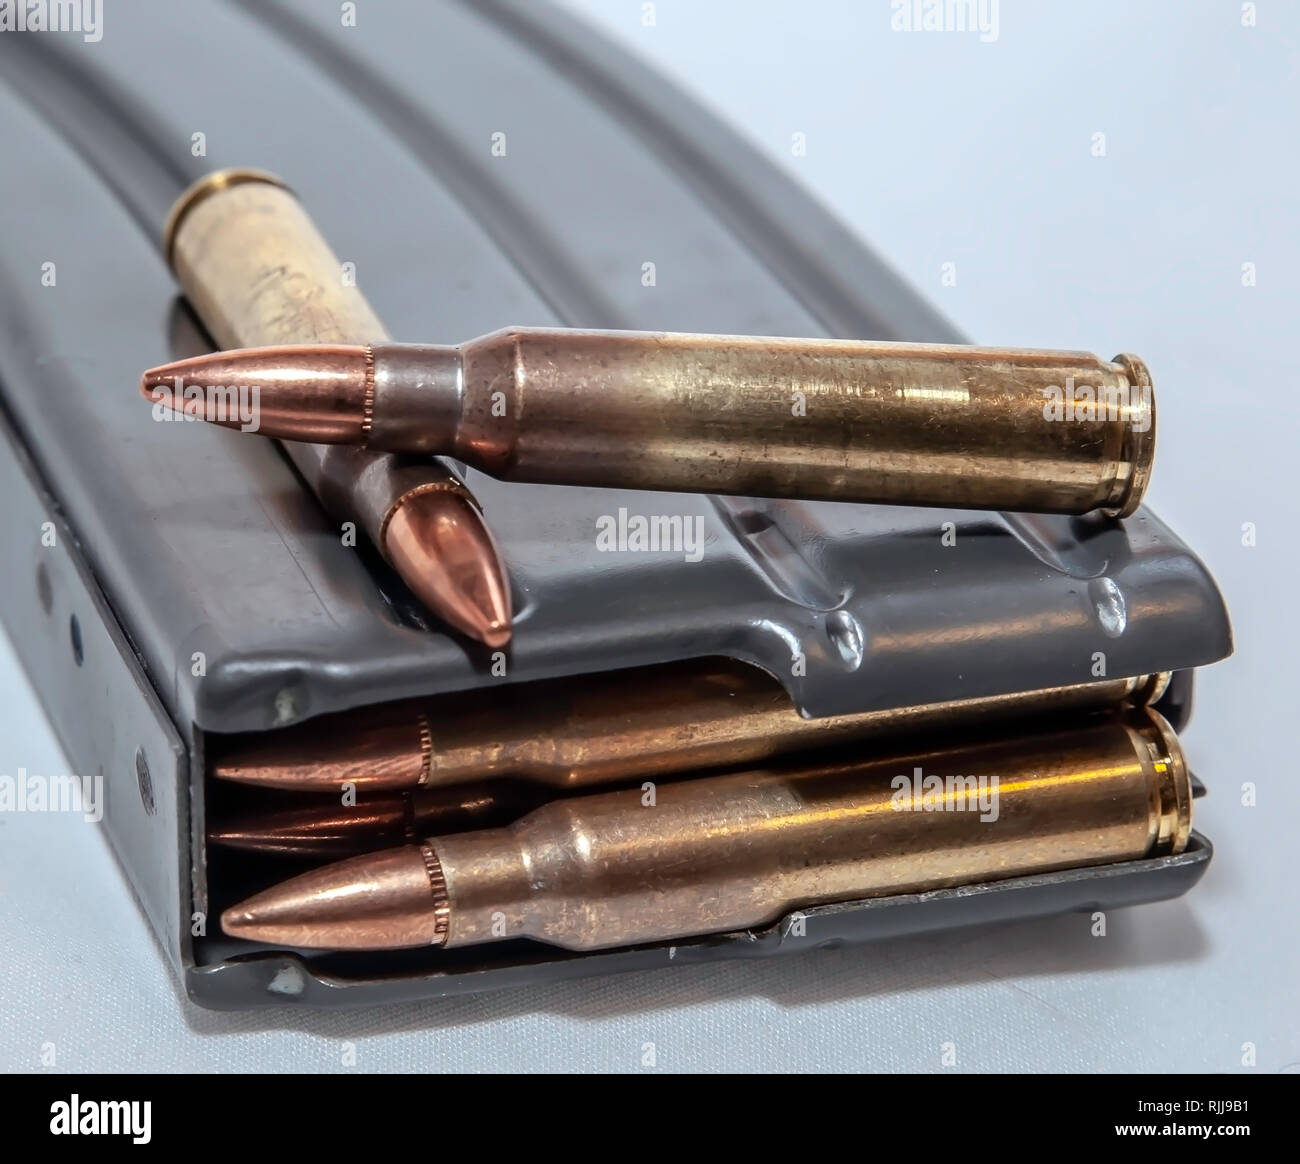 A rifle magazine loaded with 223 caliber bullets with two separate bullets on top of it on a white background - Stock Image